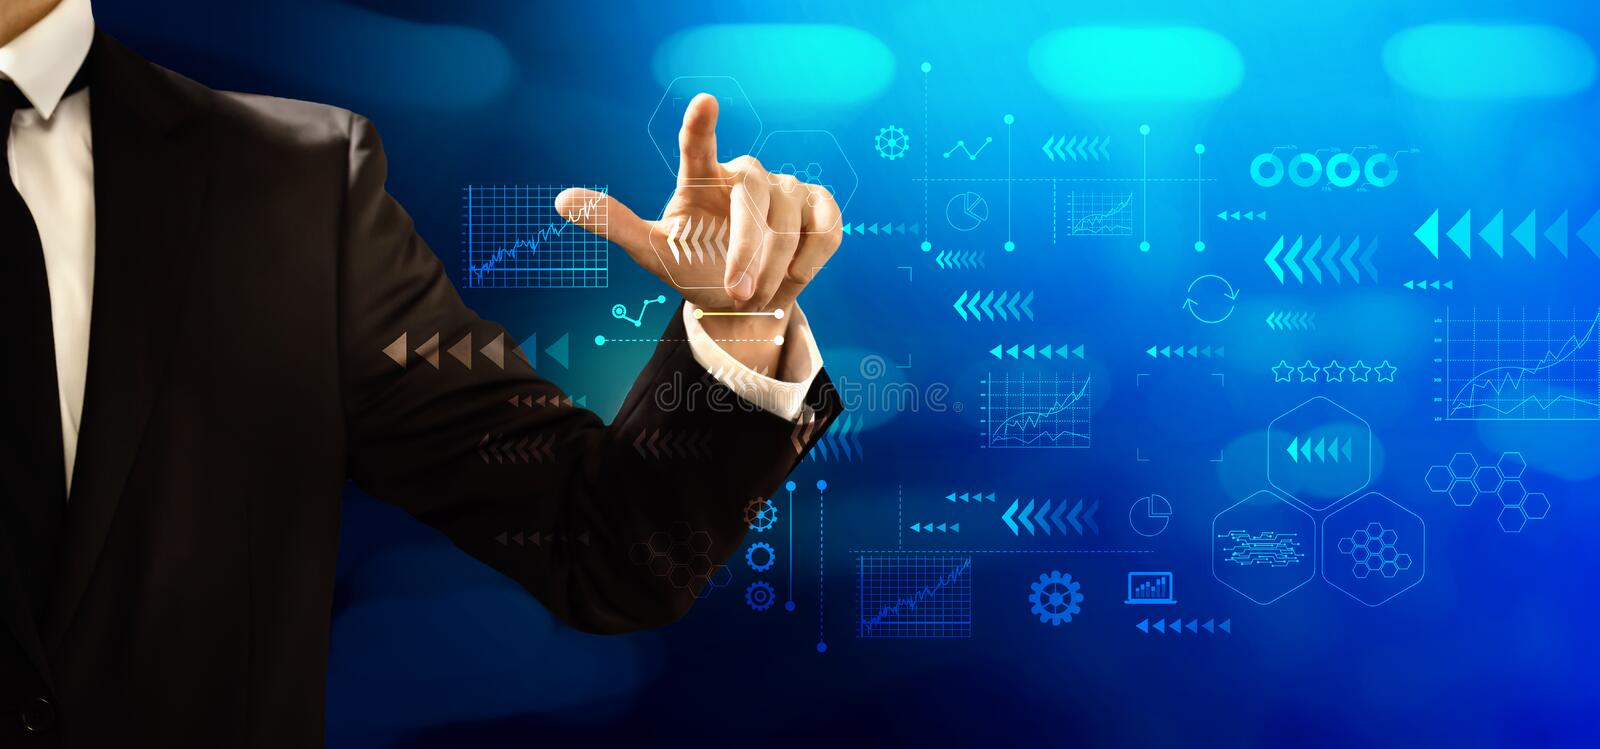 Technology screen with businessman royalty free stock photo